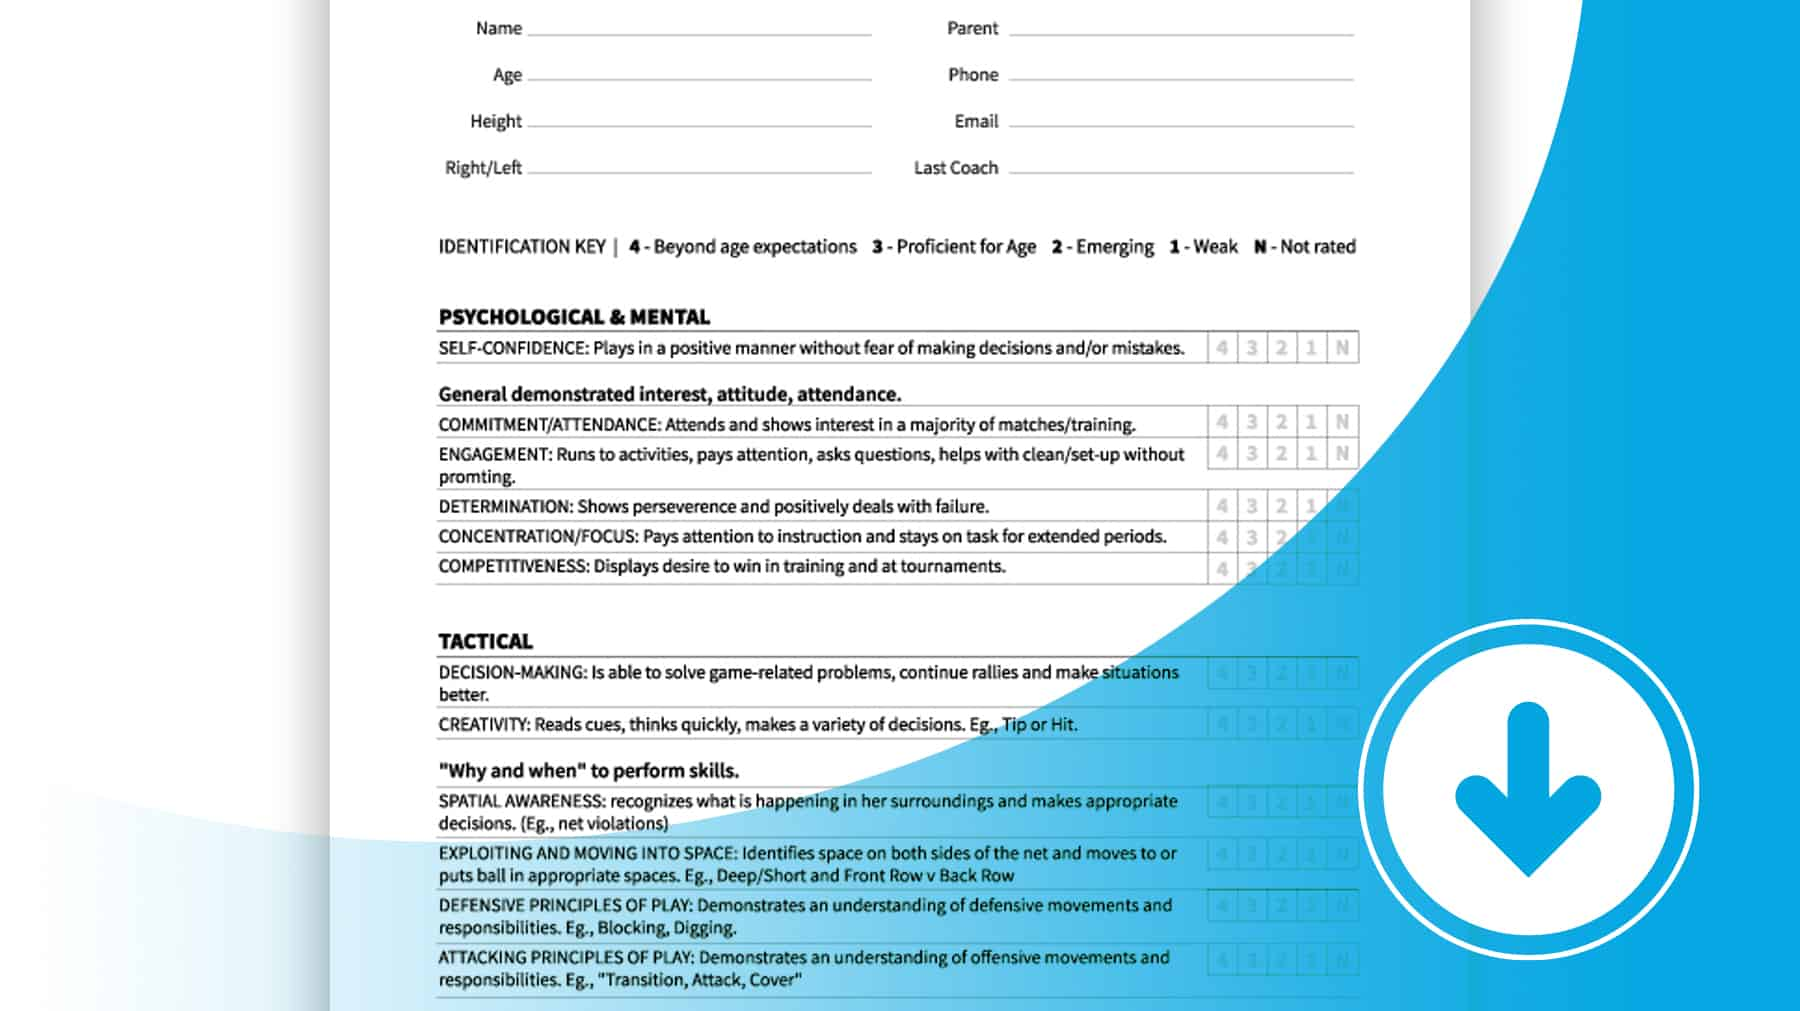 Player Evaluation Form